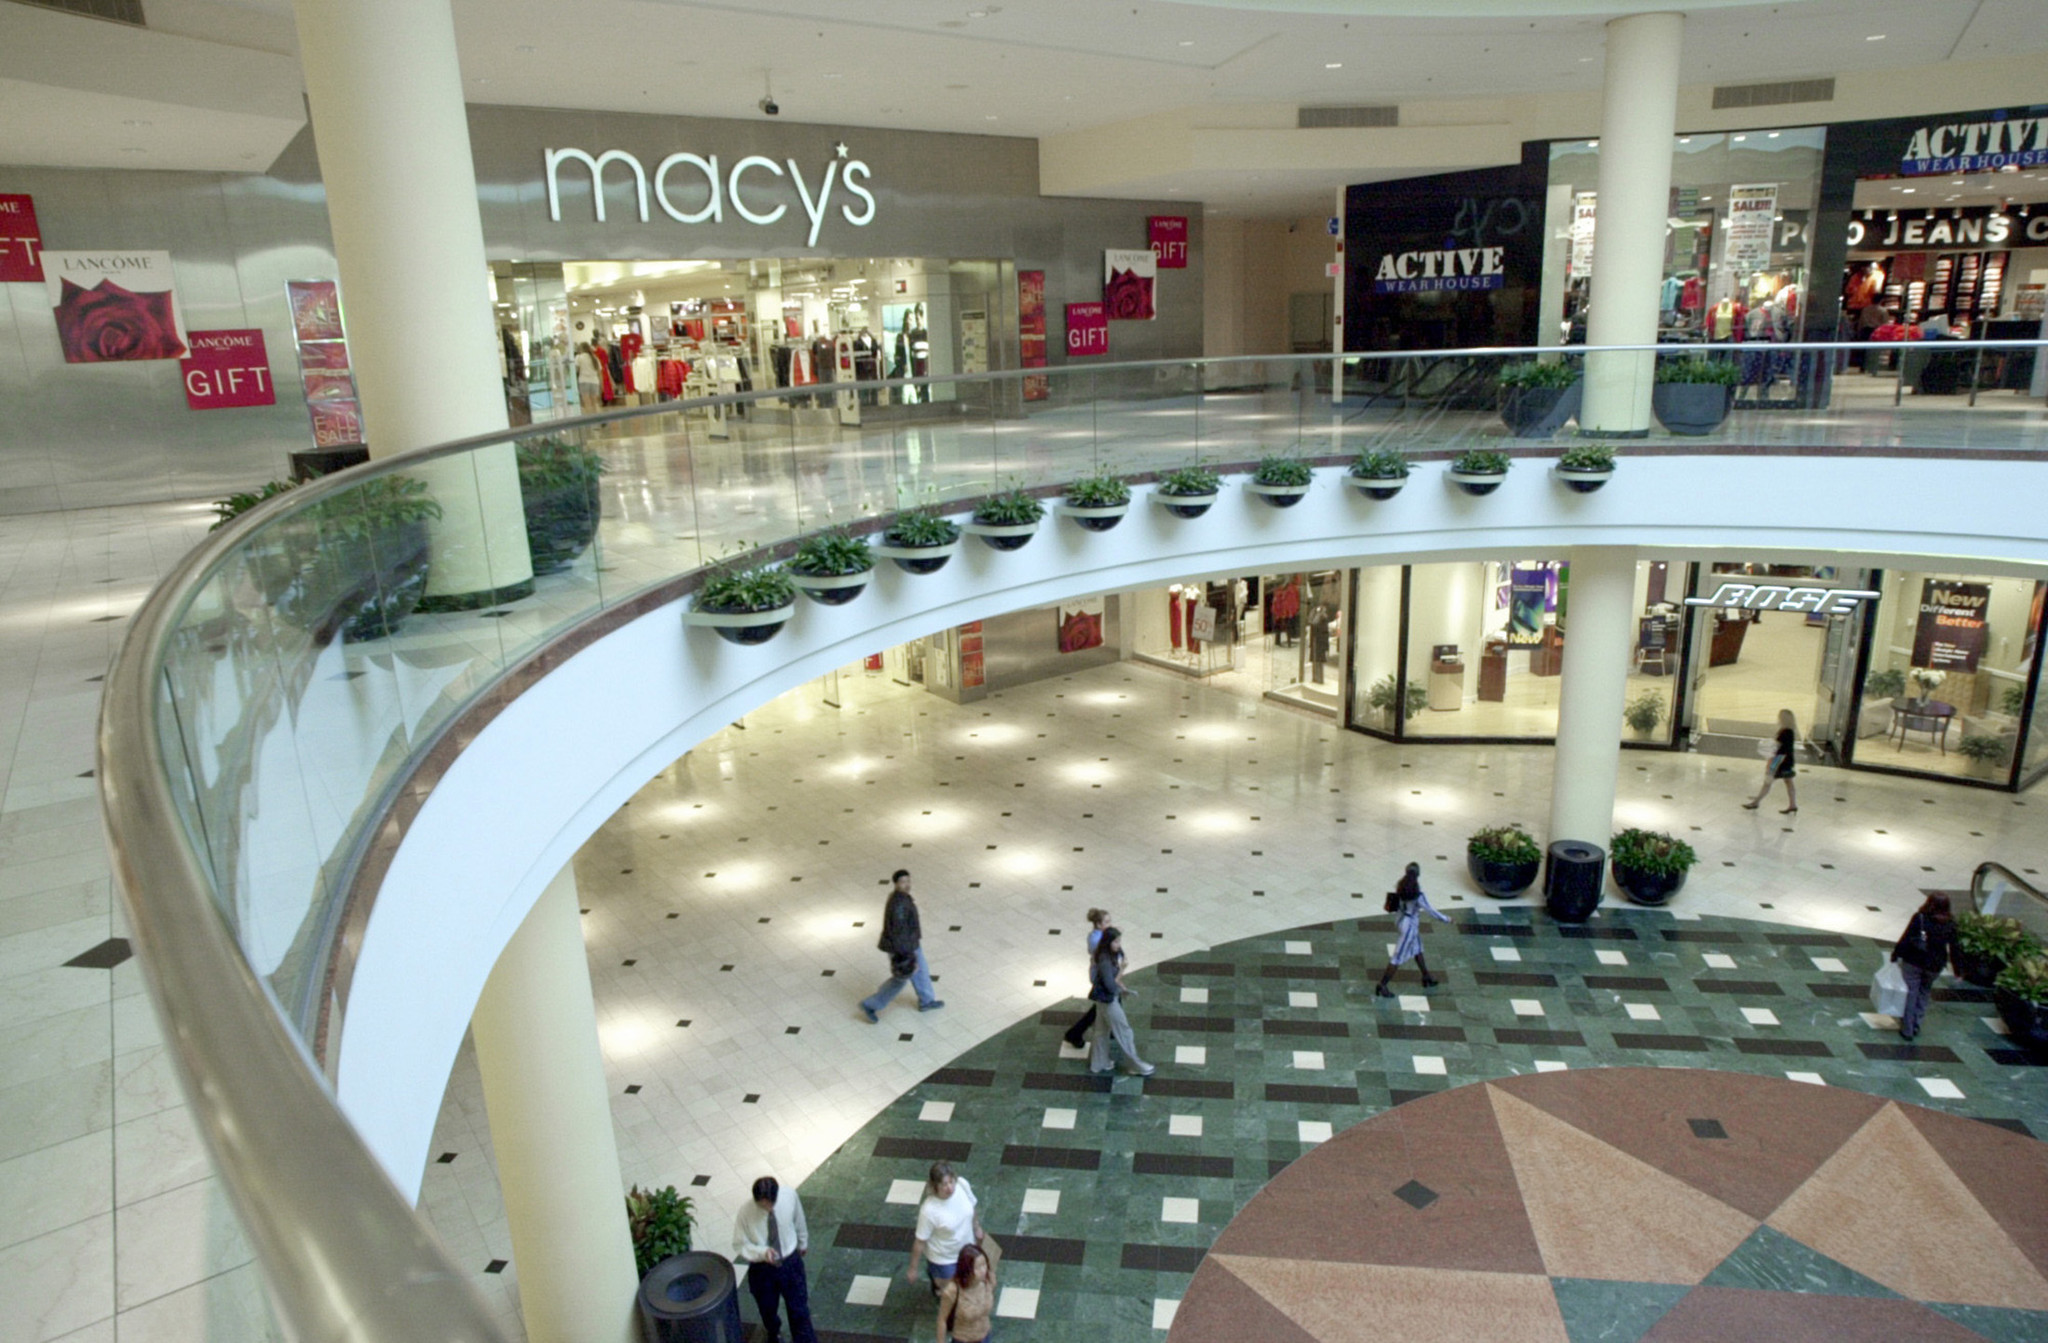 Malls In Ct >> Macy's woes could doom a third of America's malls, analyst ...